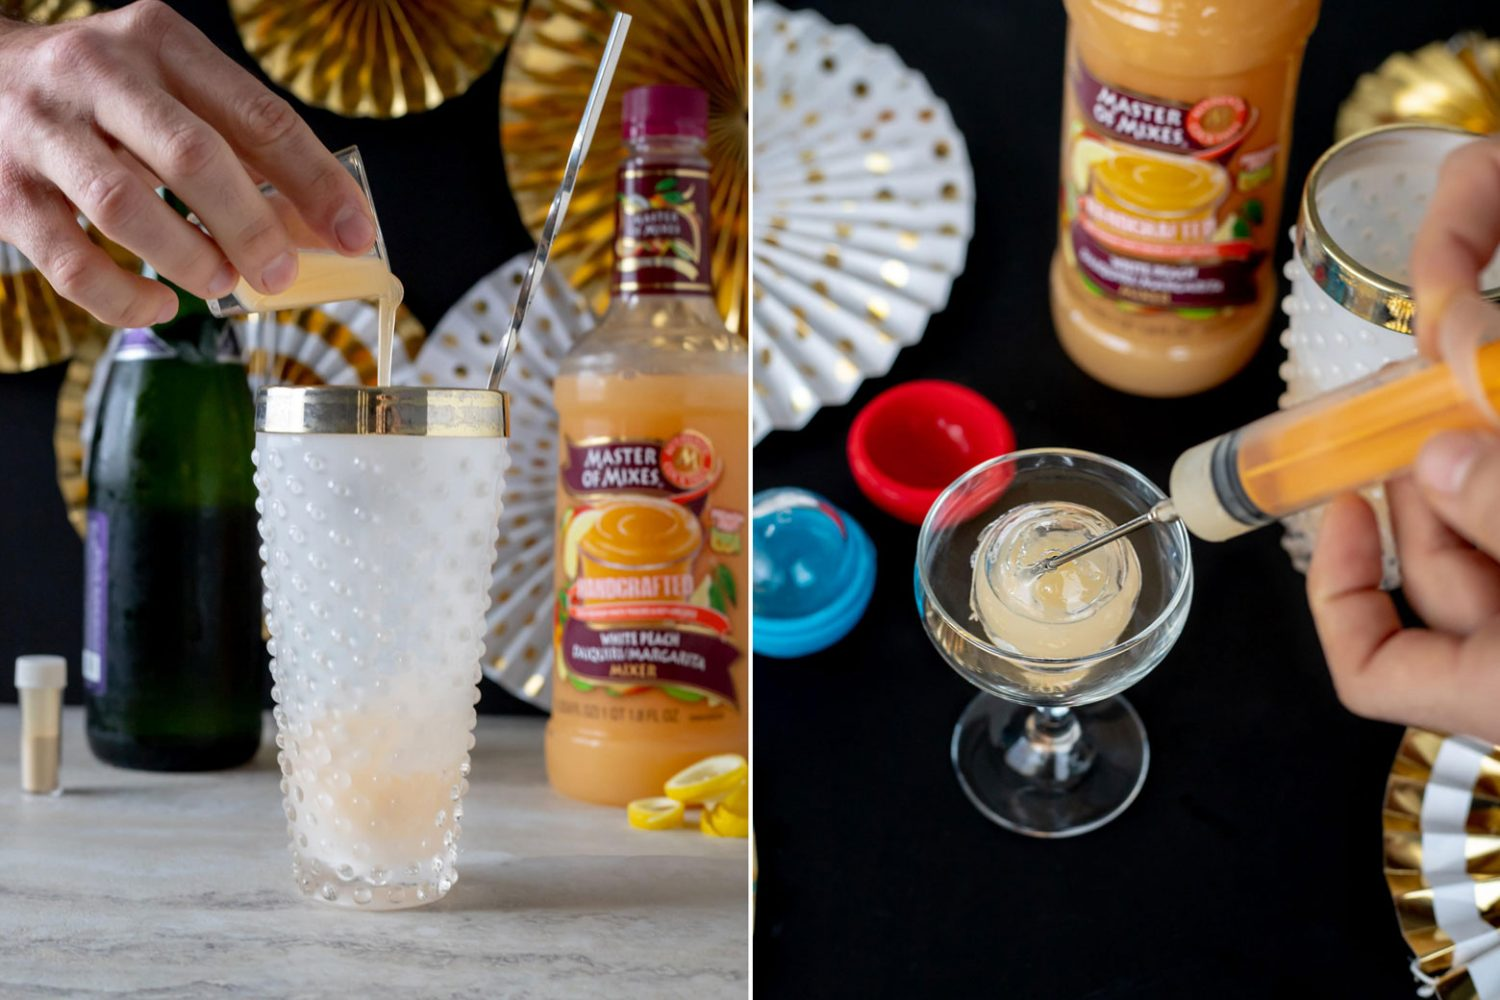 The Ball Drop is a New Years Eve ice ball cocktail made with strawberry vodka, Master of Mixes White Peach Margarita/Daiquiri Mix, lemon juice, and edible glitter. Ice ball cocktail with Master of Mixes. #Sponsored #MasterofMixes #CocktailRecipe #Cocktail #NewYearsEve #ElleTalk